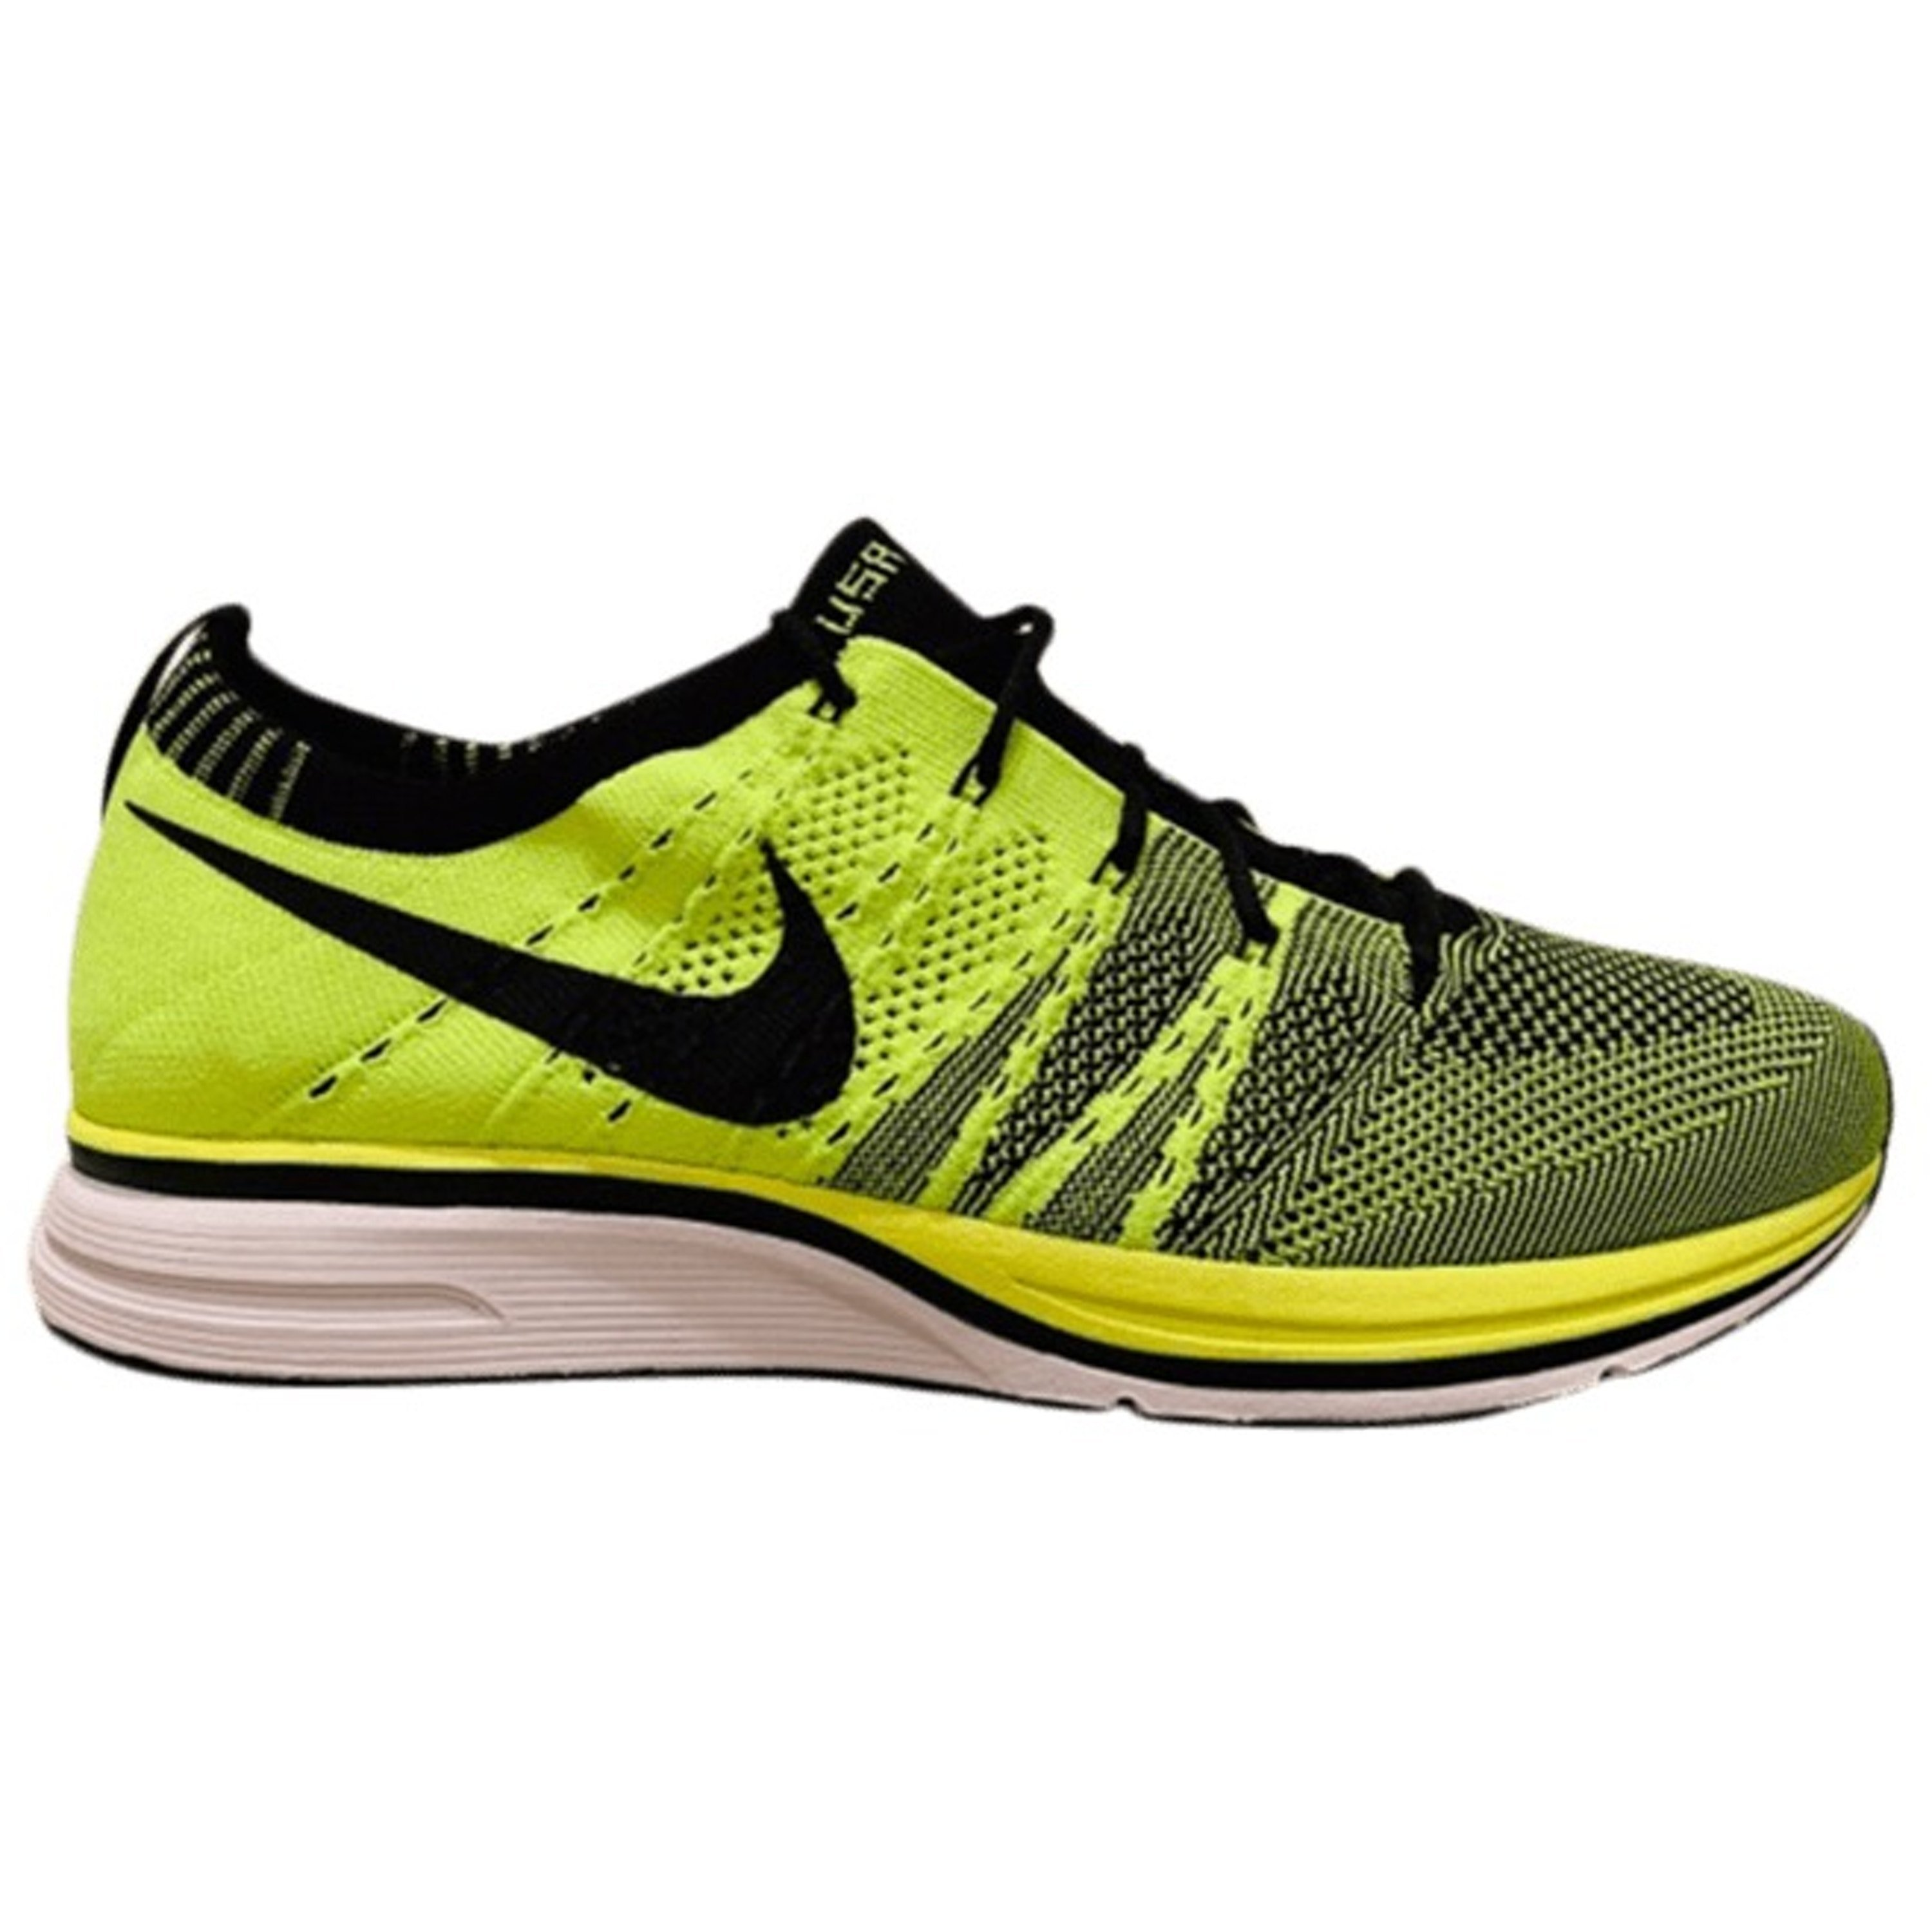 Nike Flyknit Trainer USA Medal Stand (532983-700)